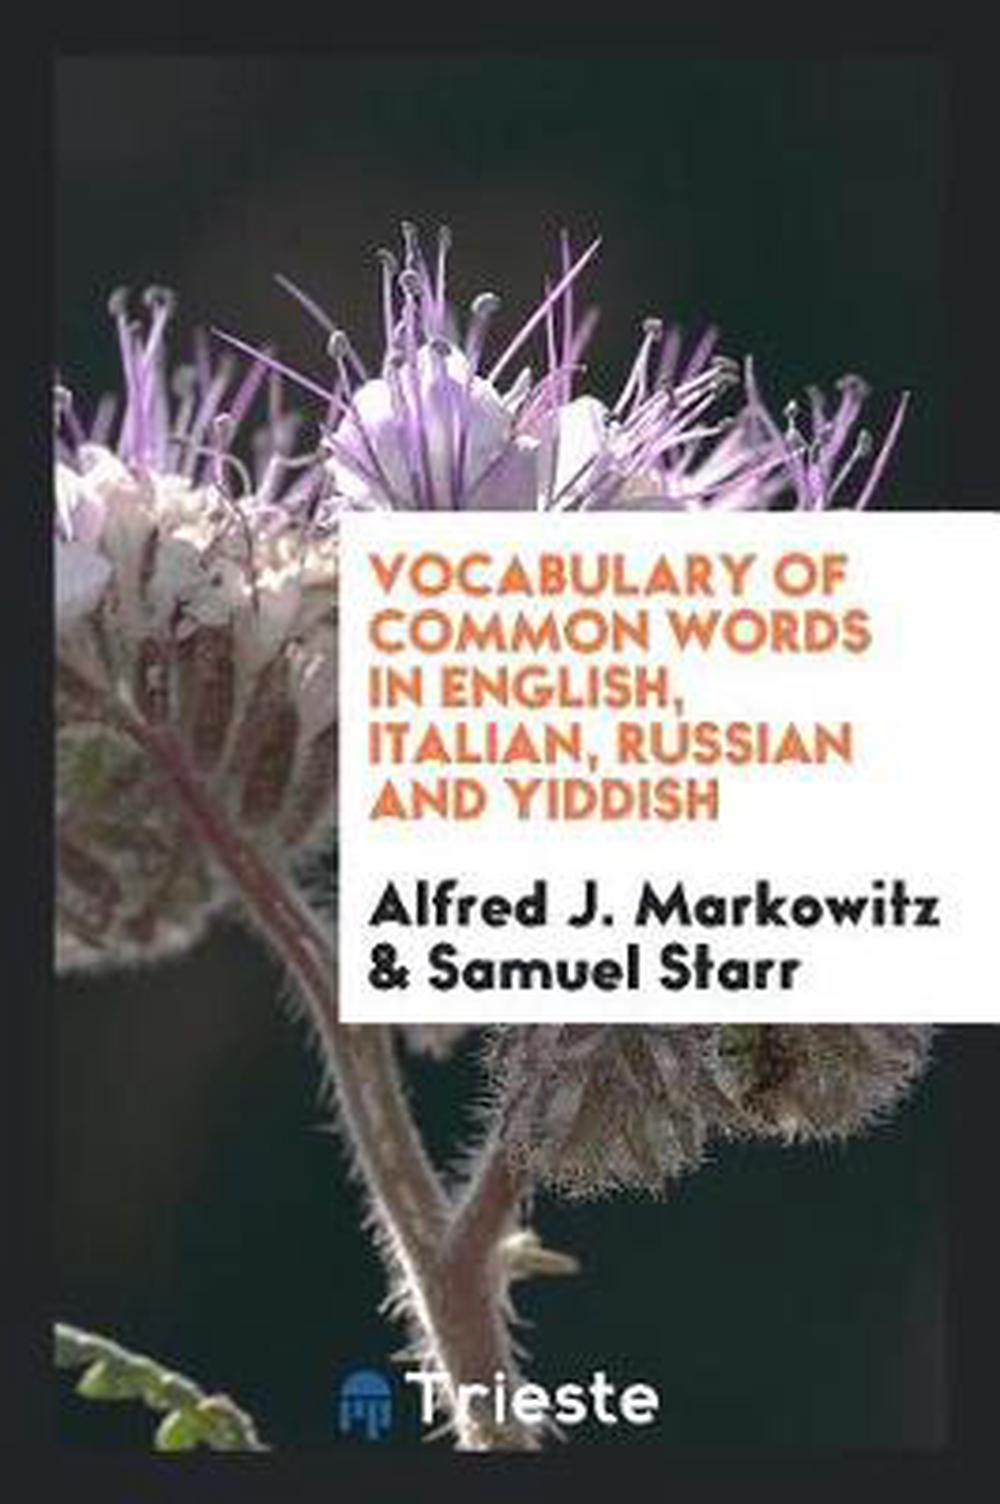 Vocabulary of common words in English, Italian, Russian and Yiddish by Alfred J.